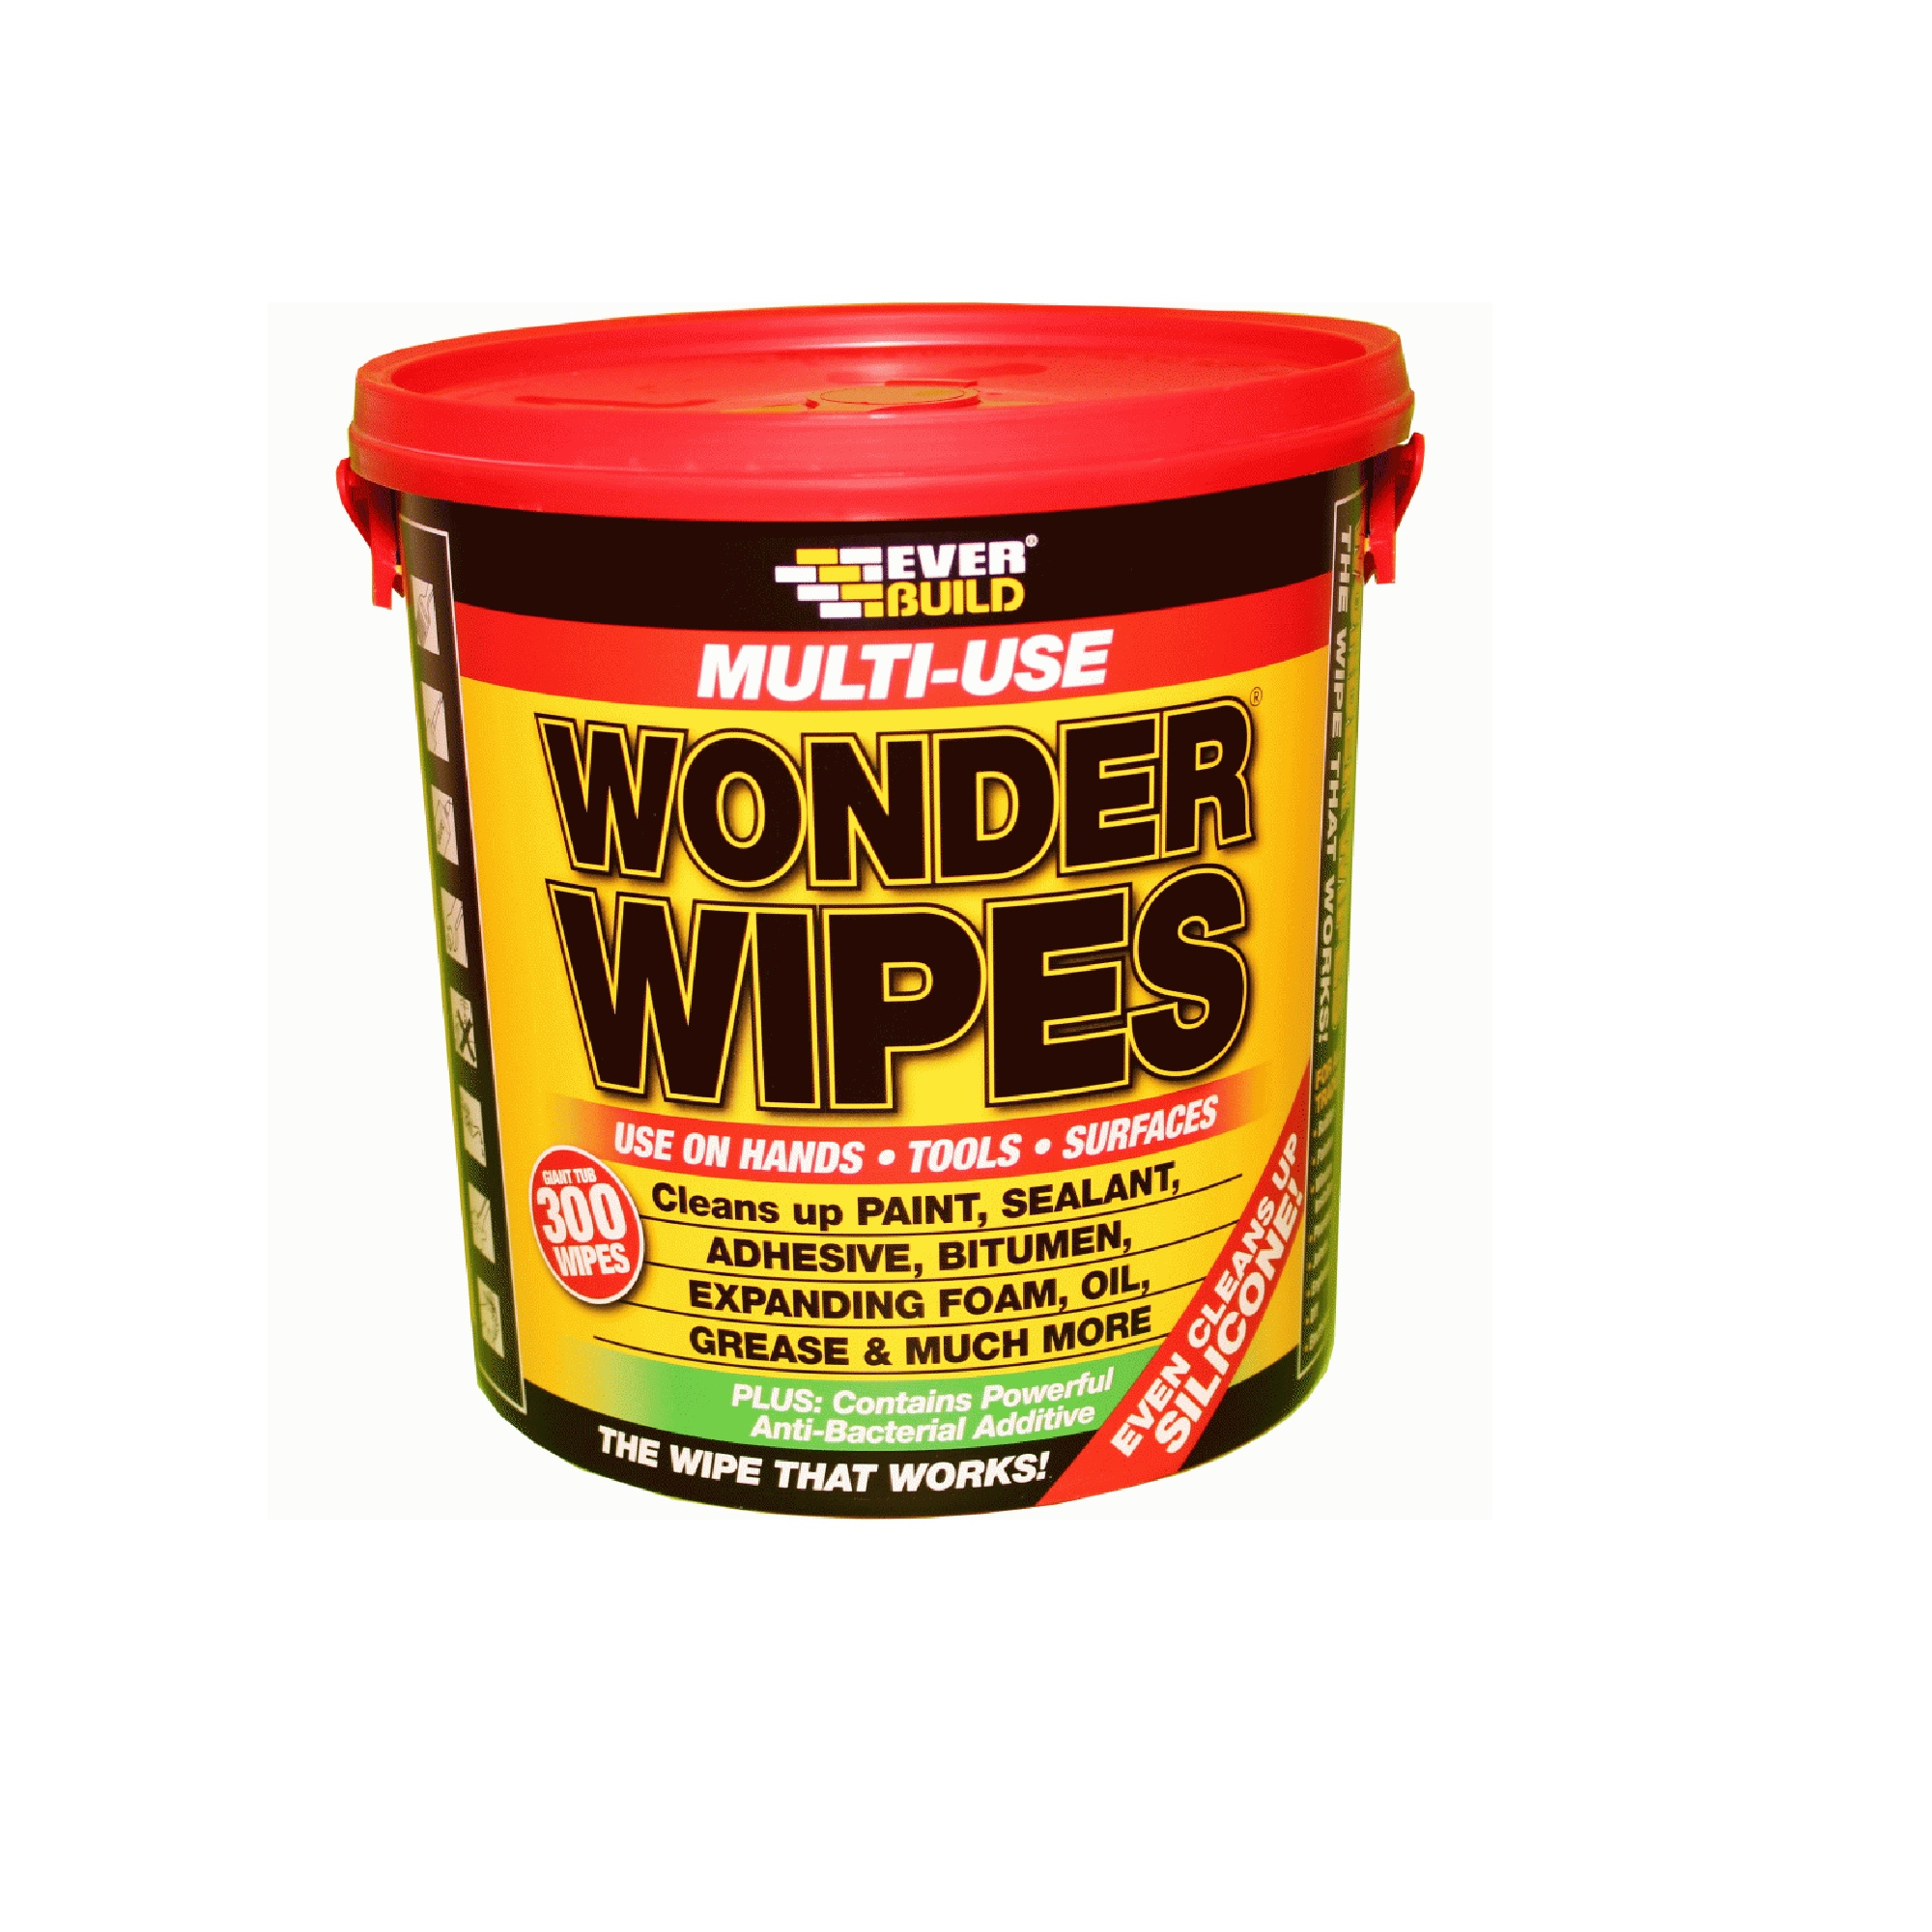 Wonder Wipes 300 wipes tub with red lid and carry handle and a yellow label with information about the wipes on the front